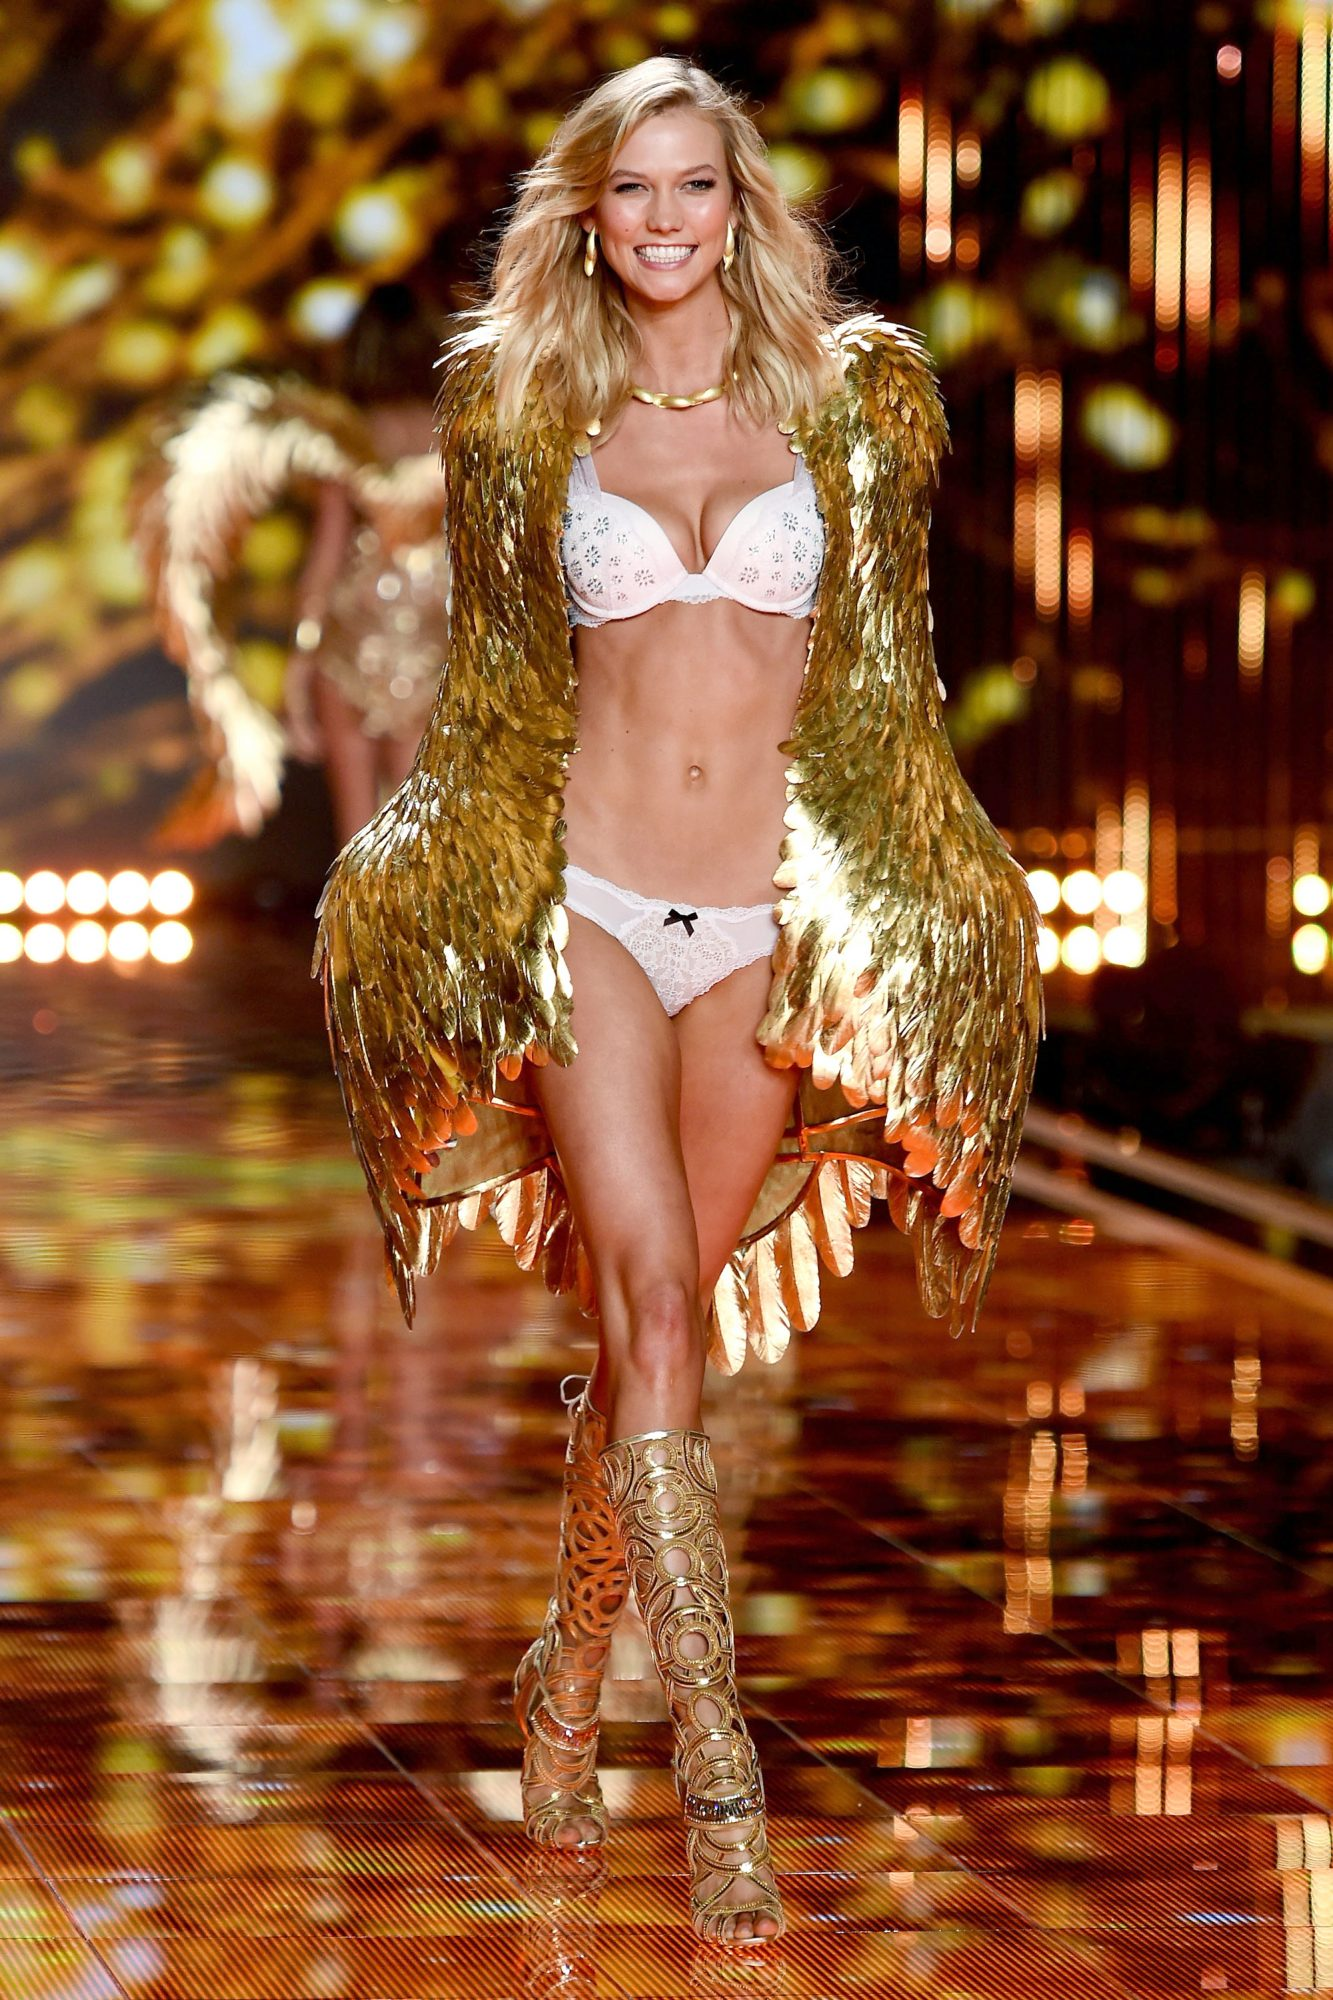 Karlie Kloss Victoria's Secret 2014 - Embed